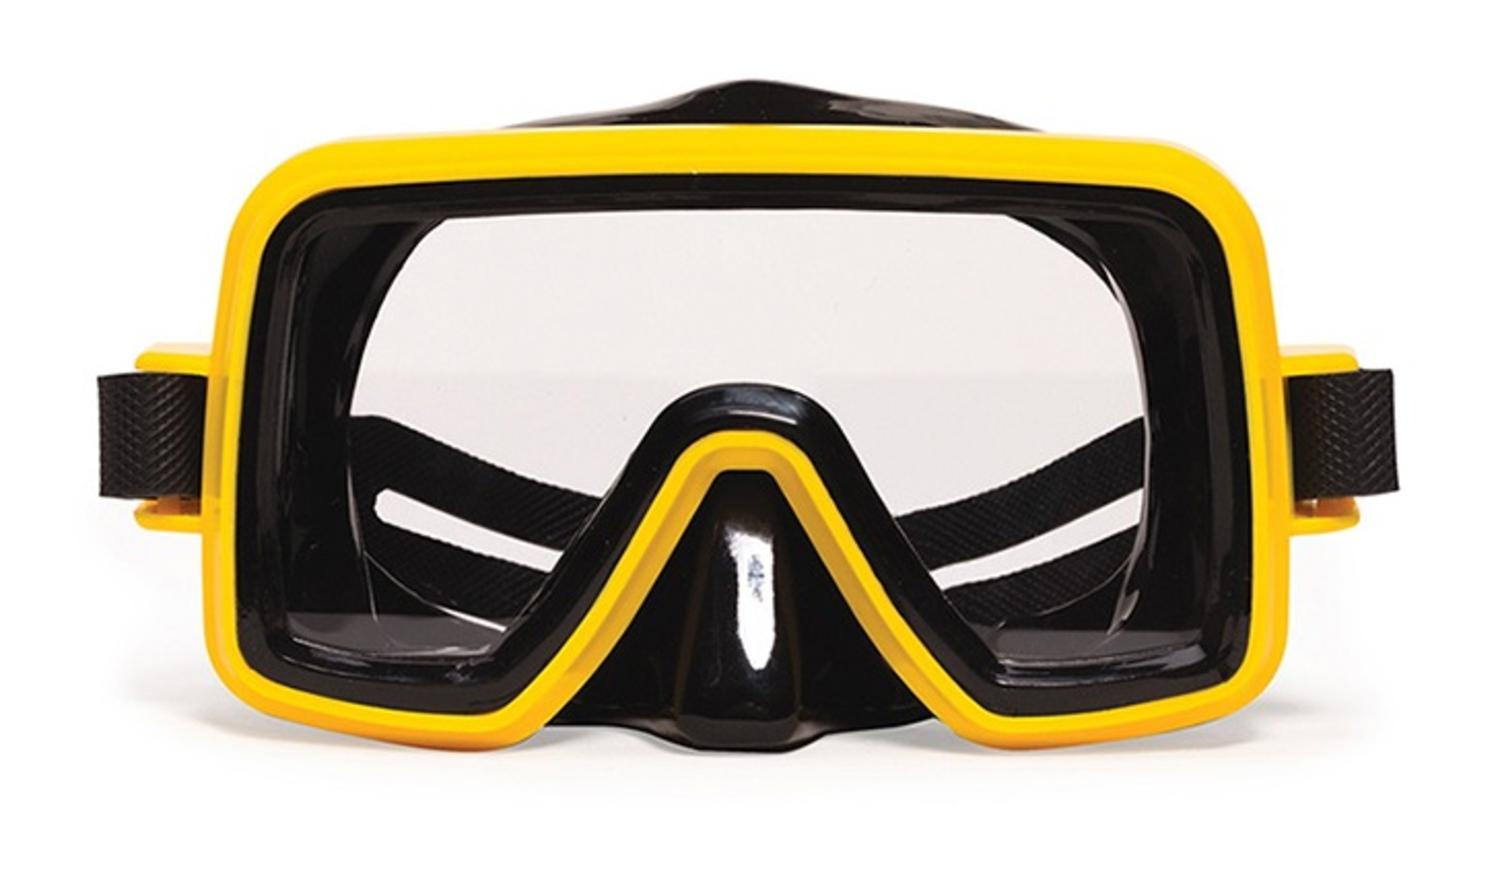 """7.25"""" Bahama Sport Yellow Mask Swimming Pool Accessory for Adults by Swim Central"""